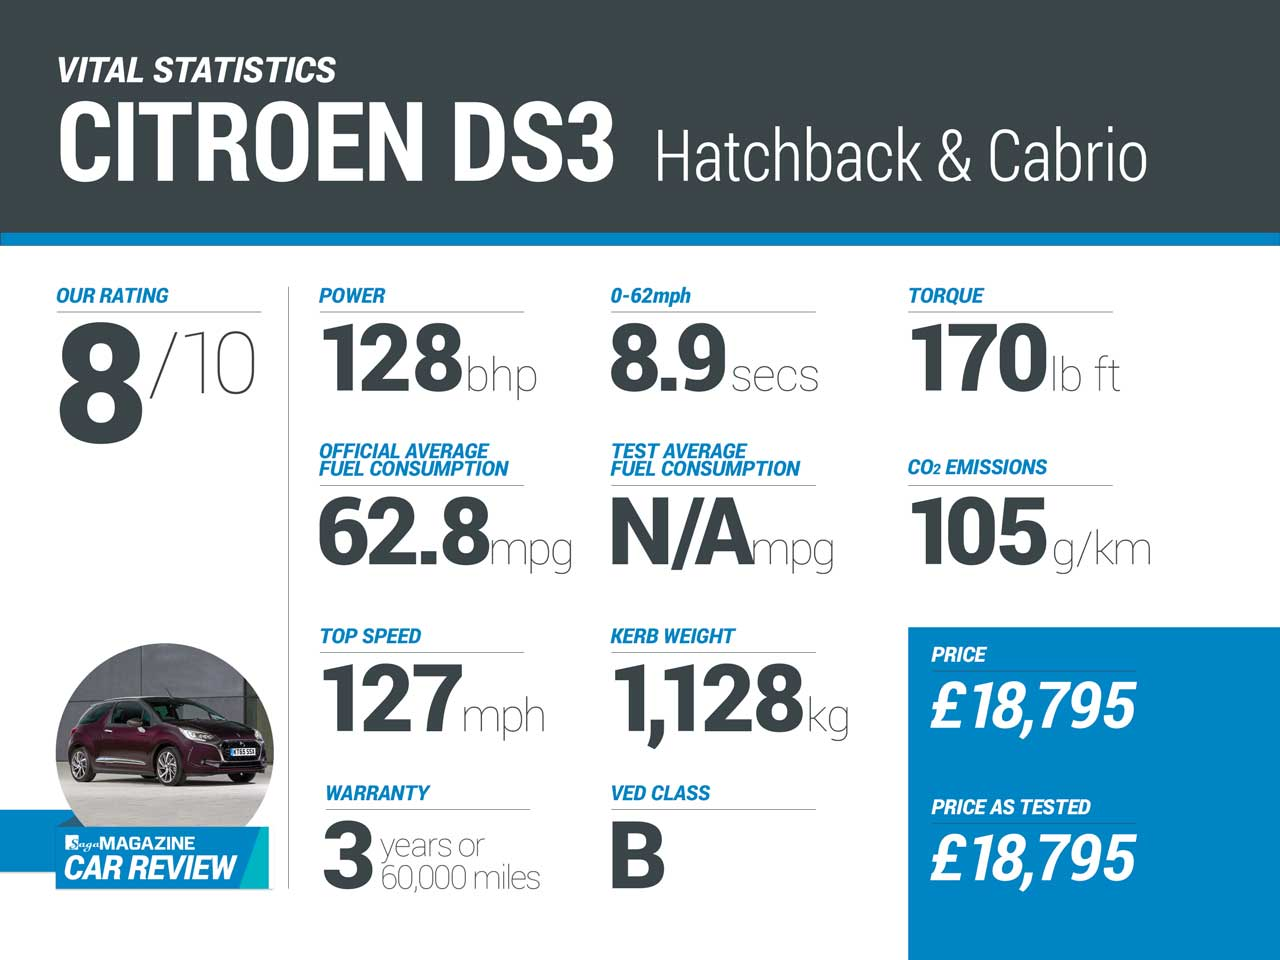 Saga Magazine car review - Citroen DS3 hatchback and cabrio infographic